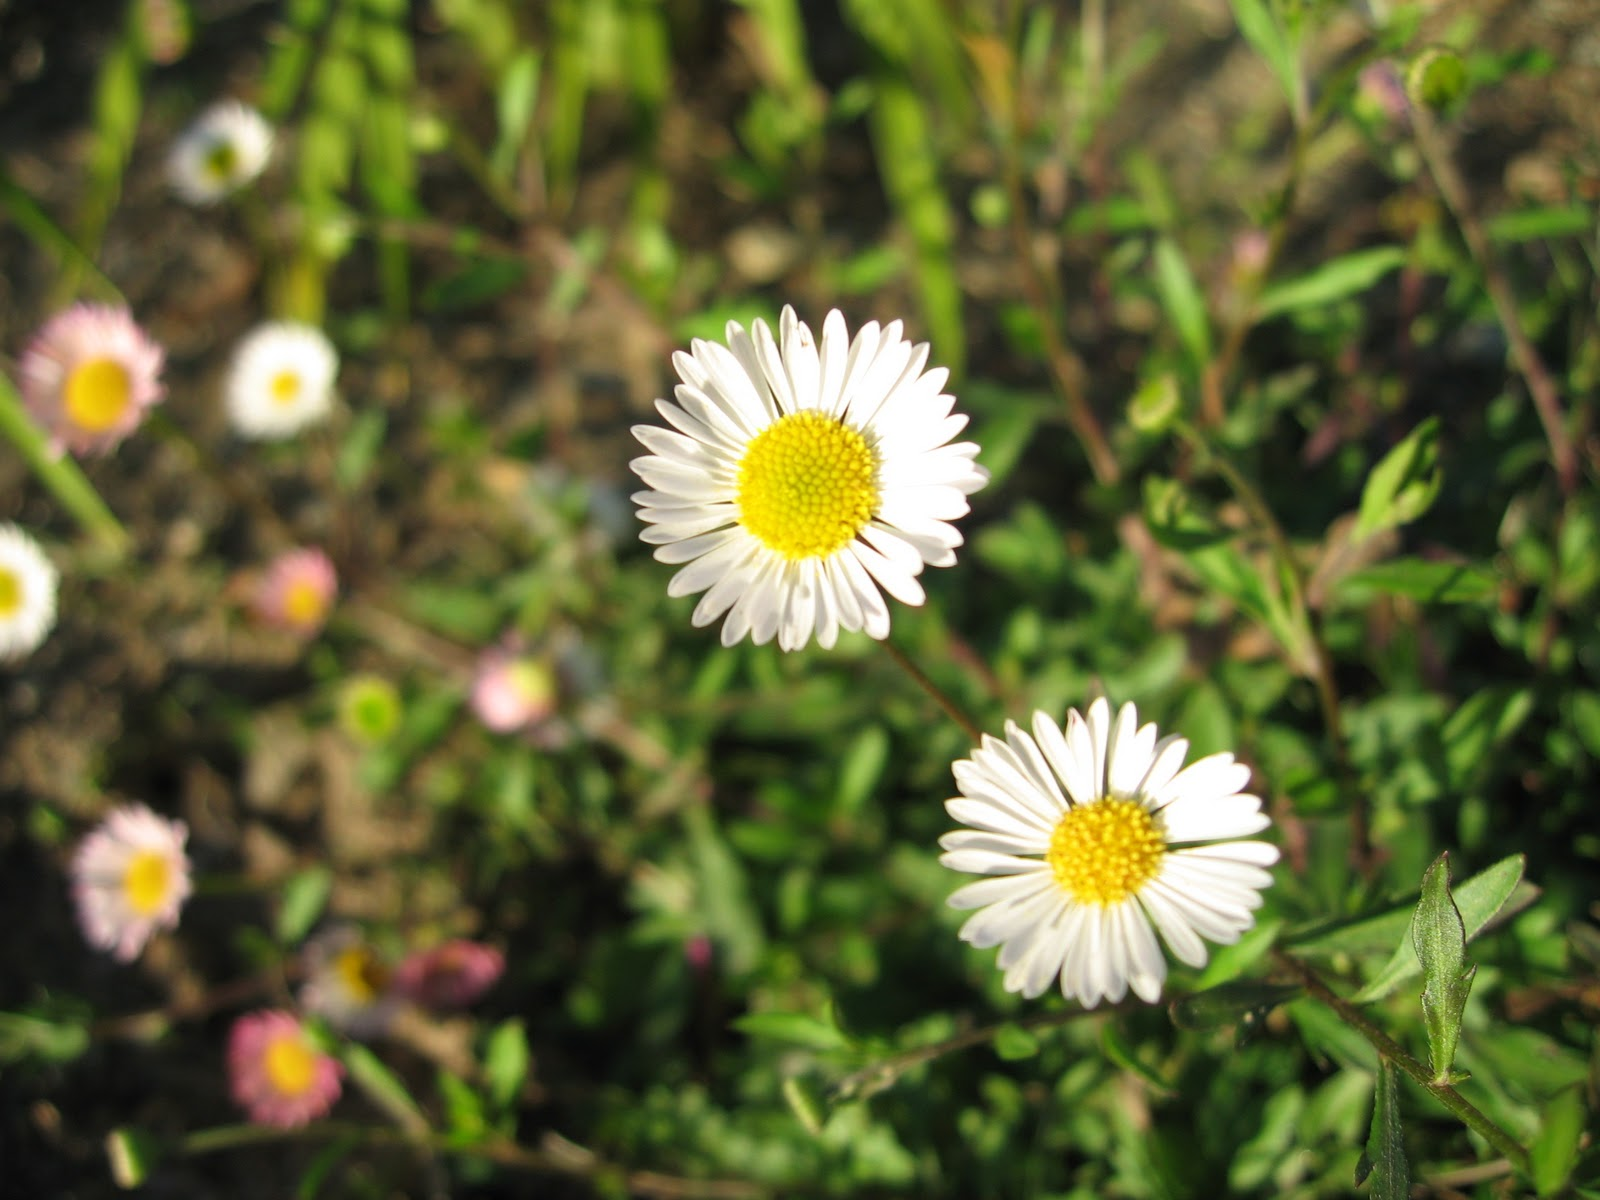 My california garden in zone 23 santa barbara daisy heres a spreading ground cover with a daisy like flower planted in the fall the strategically placed clumps quietly established themselves during our izmirmasajfo